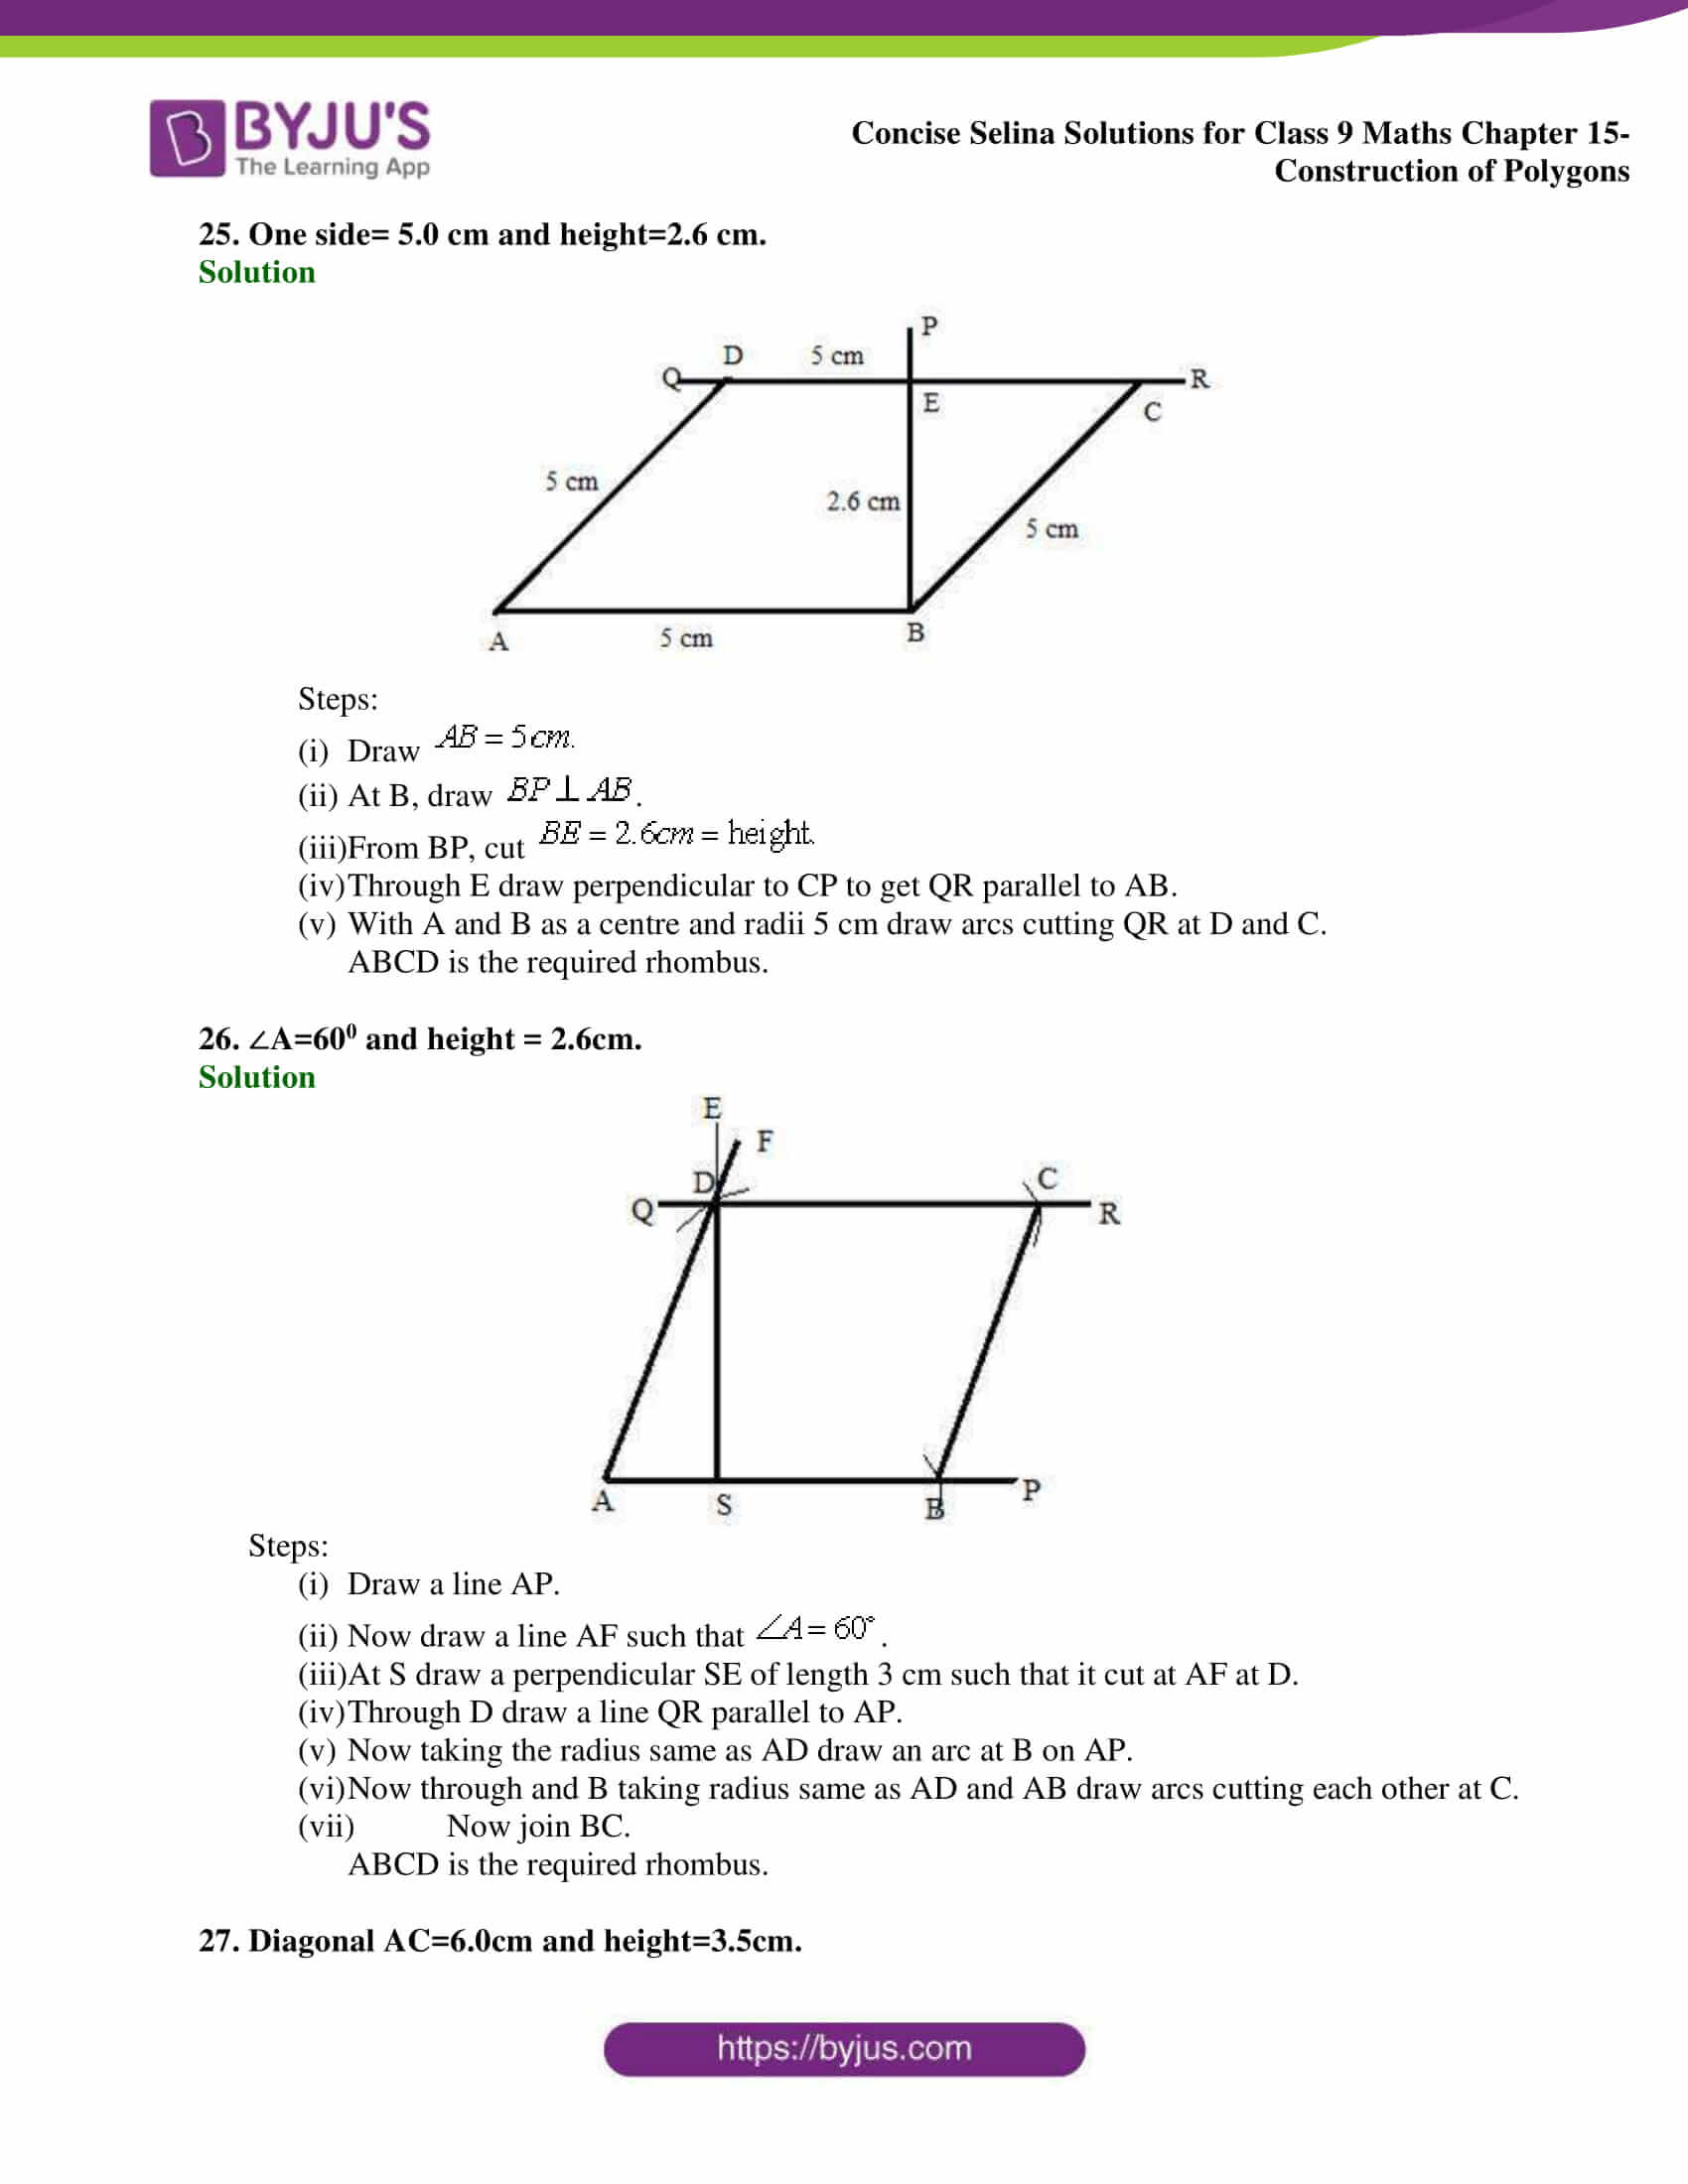 selina Solutions for Class 9 Maths Chapter 15 part 13